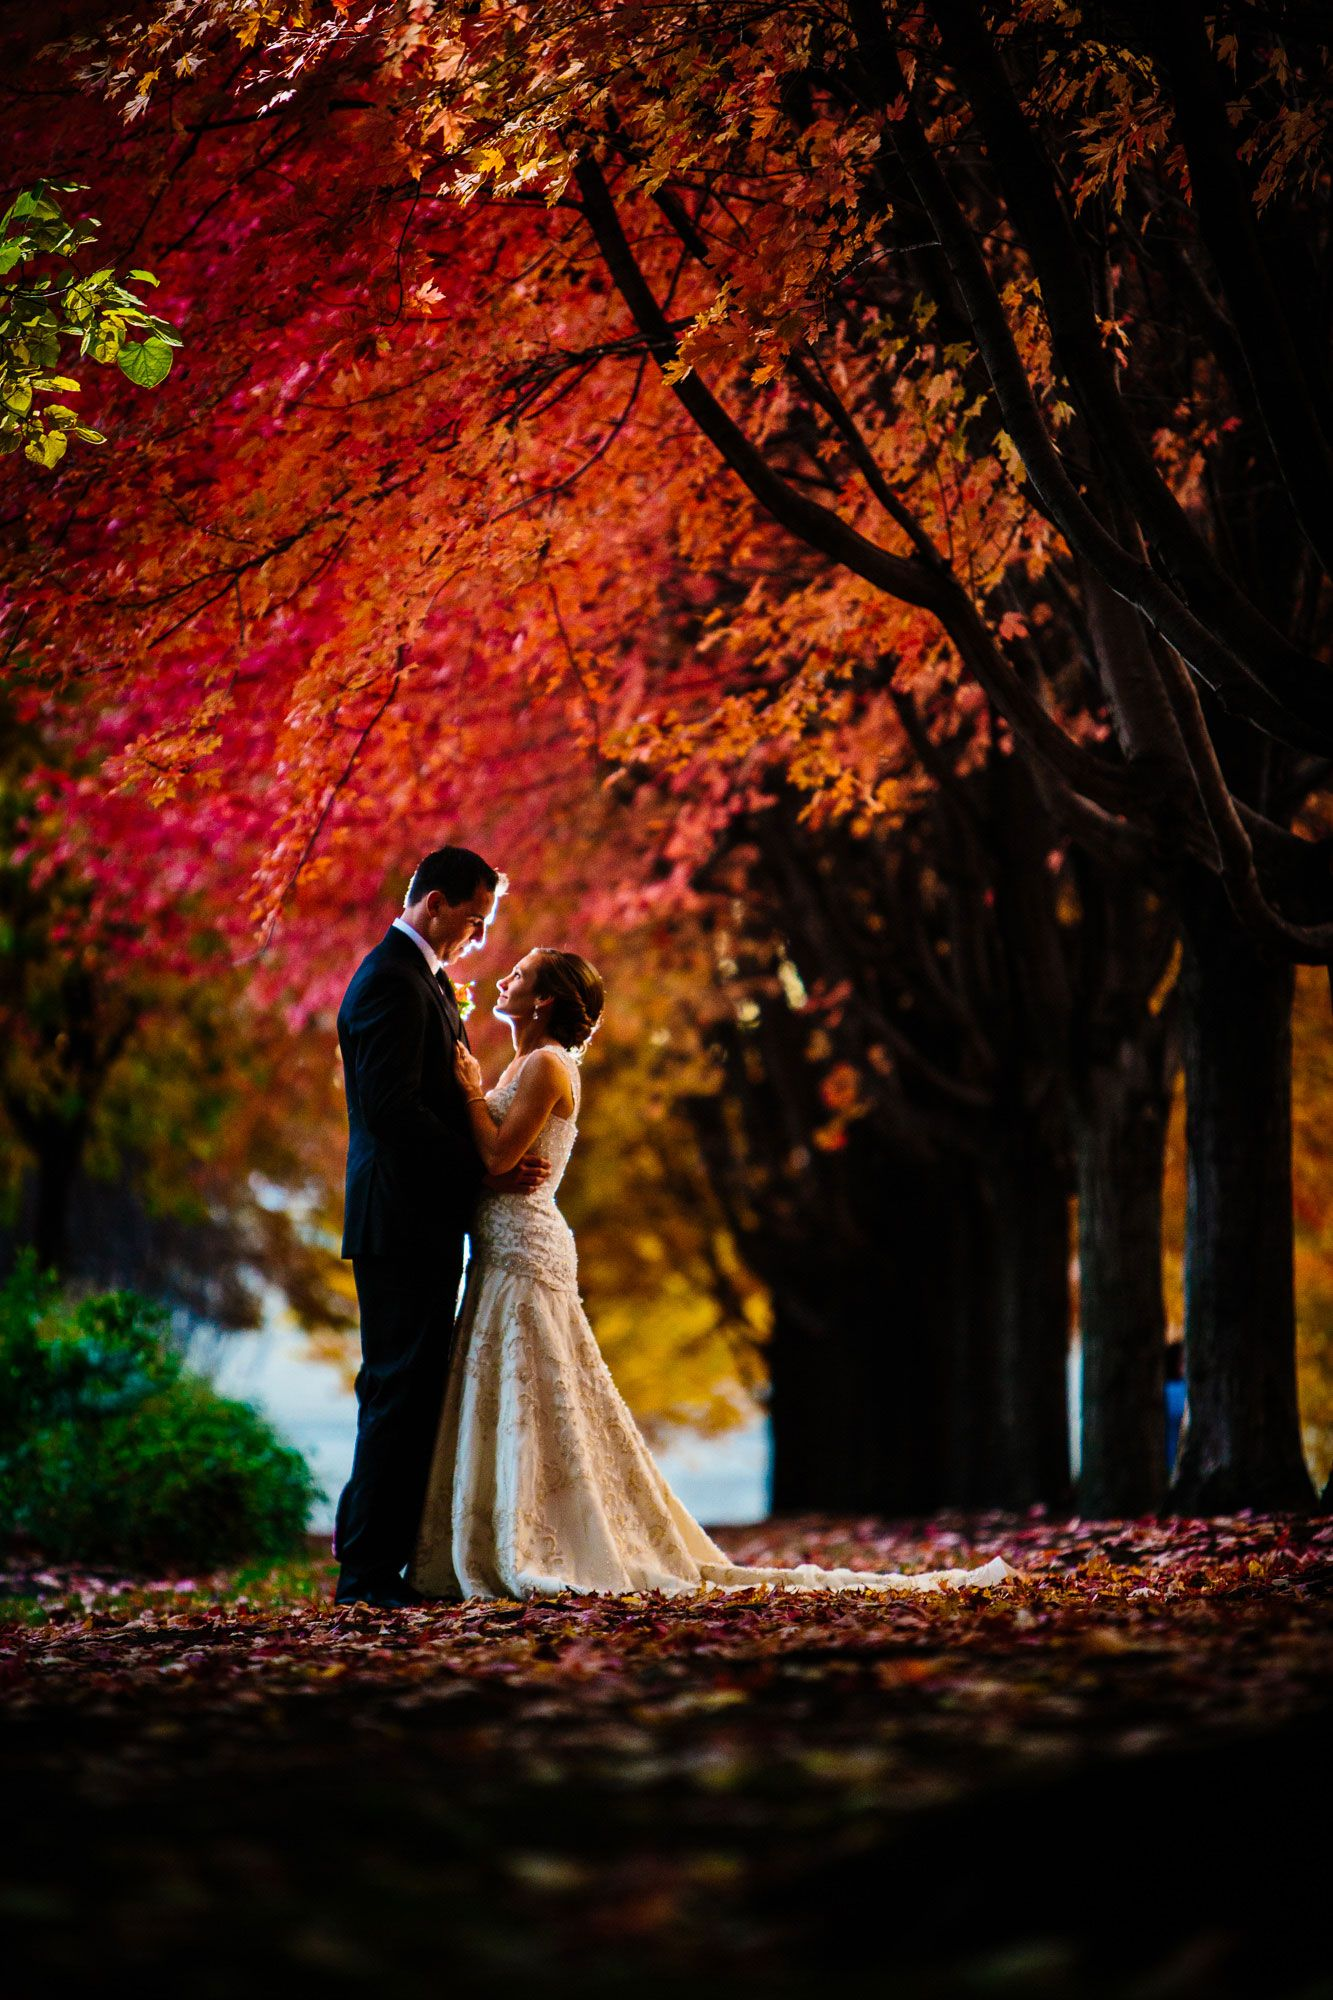 Getting married in the fall? Make sure to capture the